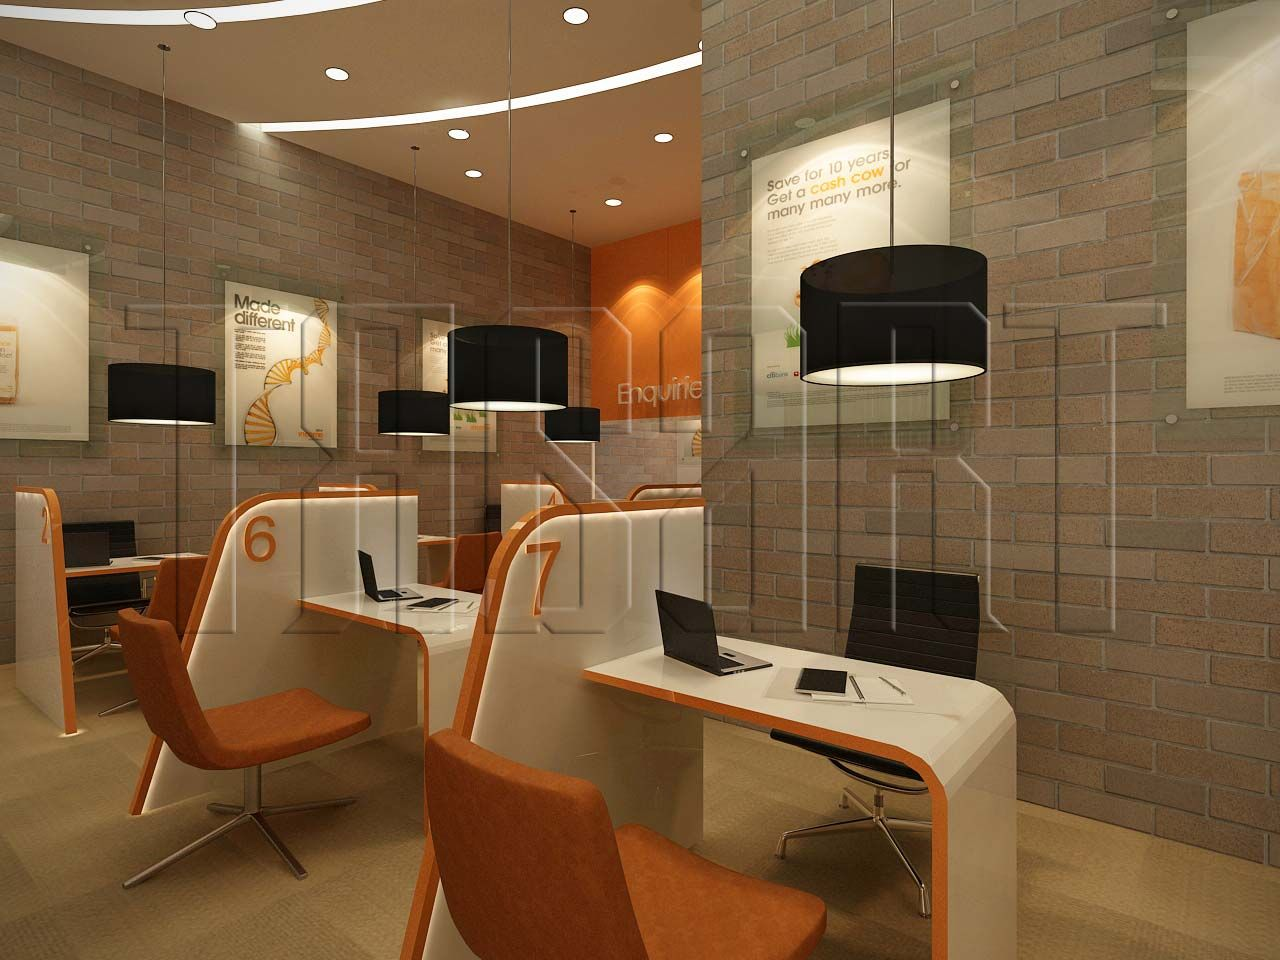 A Modern Futuristic Look For A Customer Service Counter Office Interior Design By Traart Bank Interior Design Office Furniture Design Office Interior Design